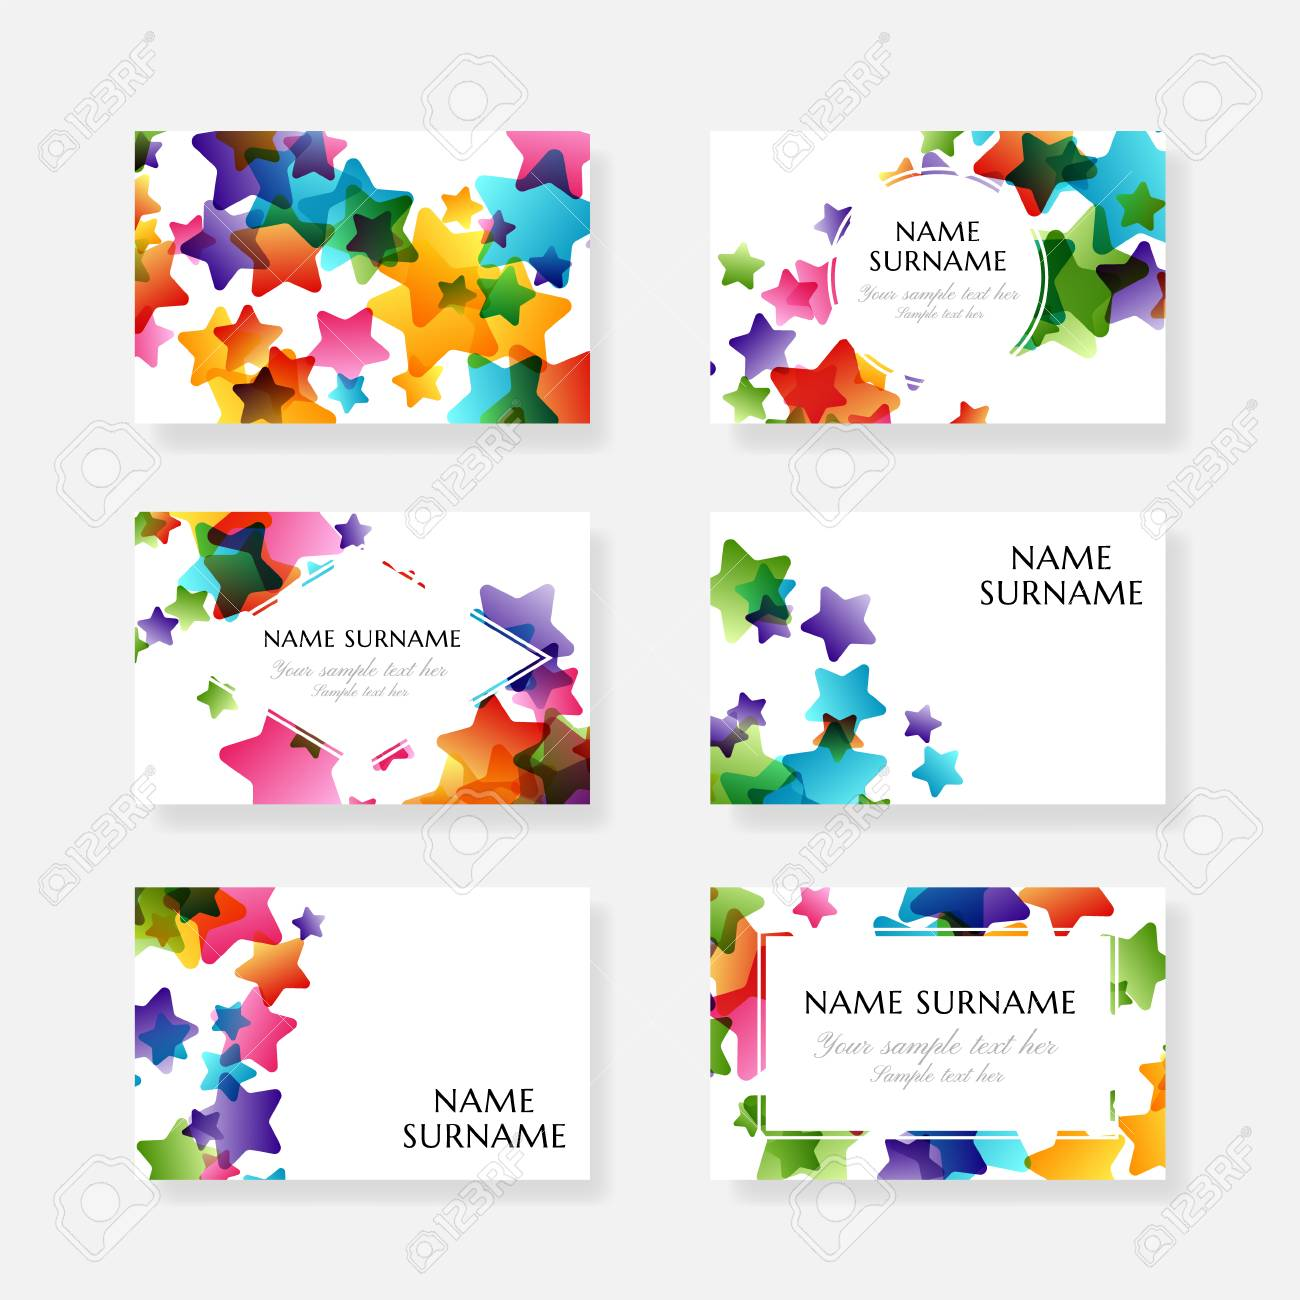 creative kids design collection vector cards with colorful stars